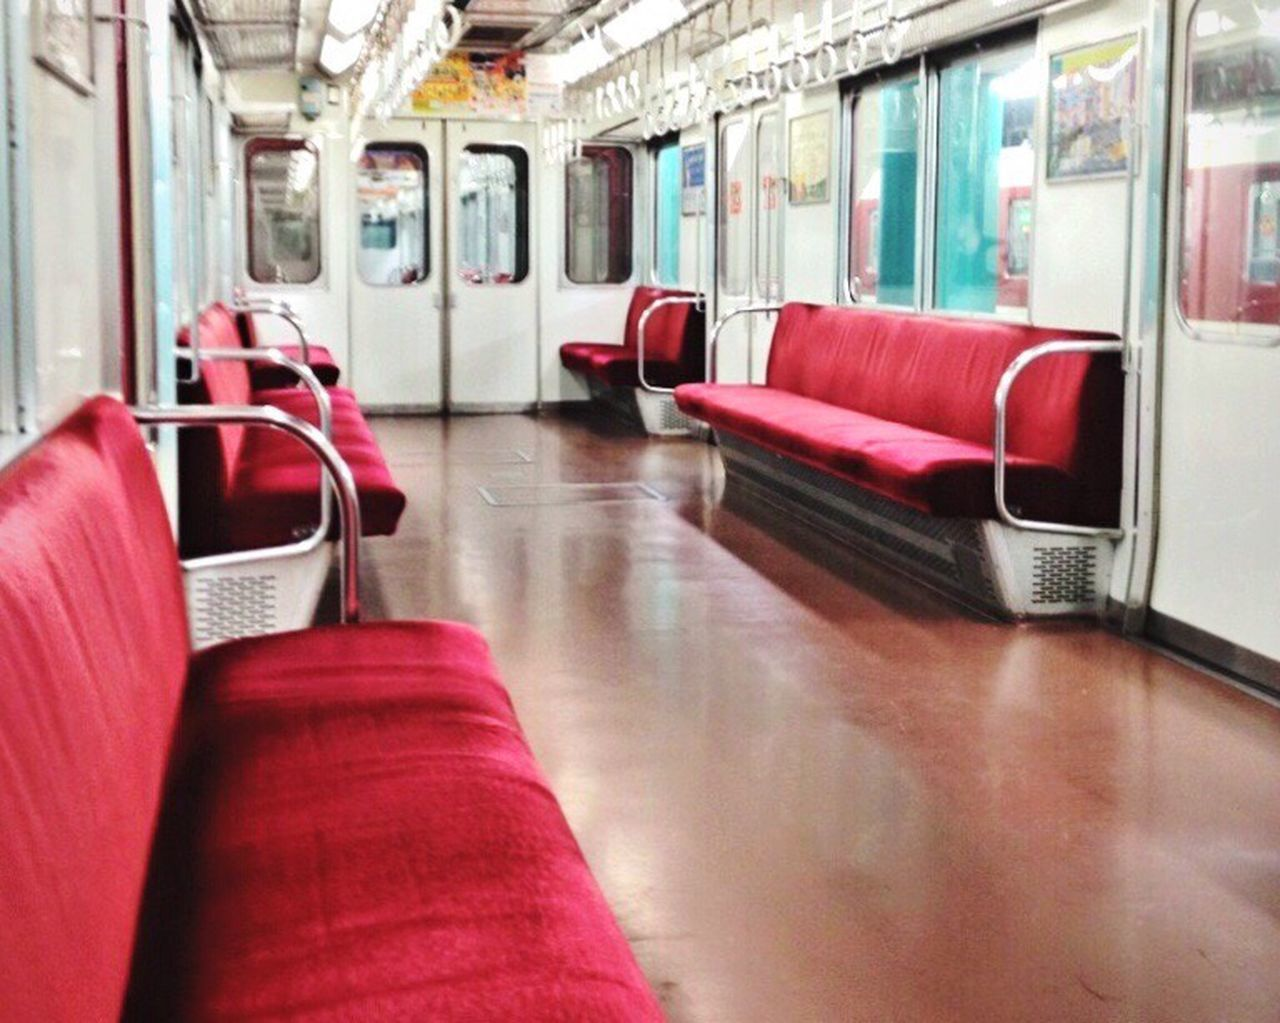 Train - Vehicle Public Transportation Red Vehicle Interior Vehicle Seat Commuter Train Transportation